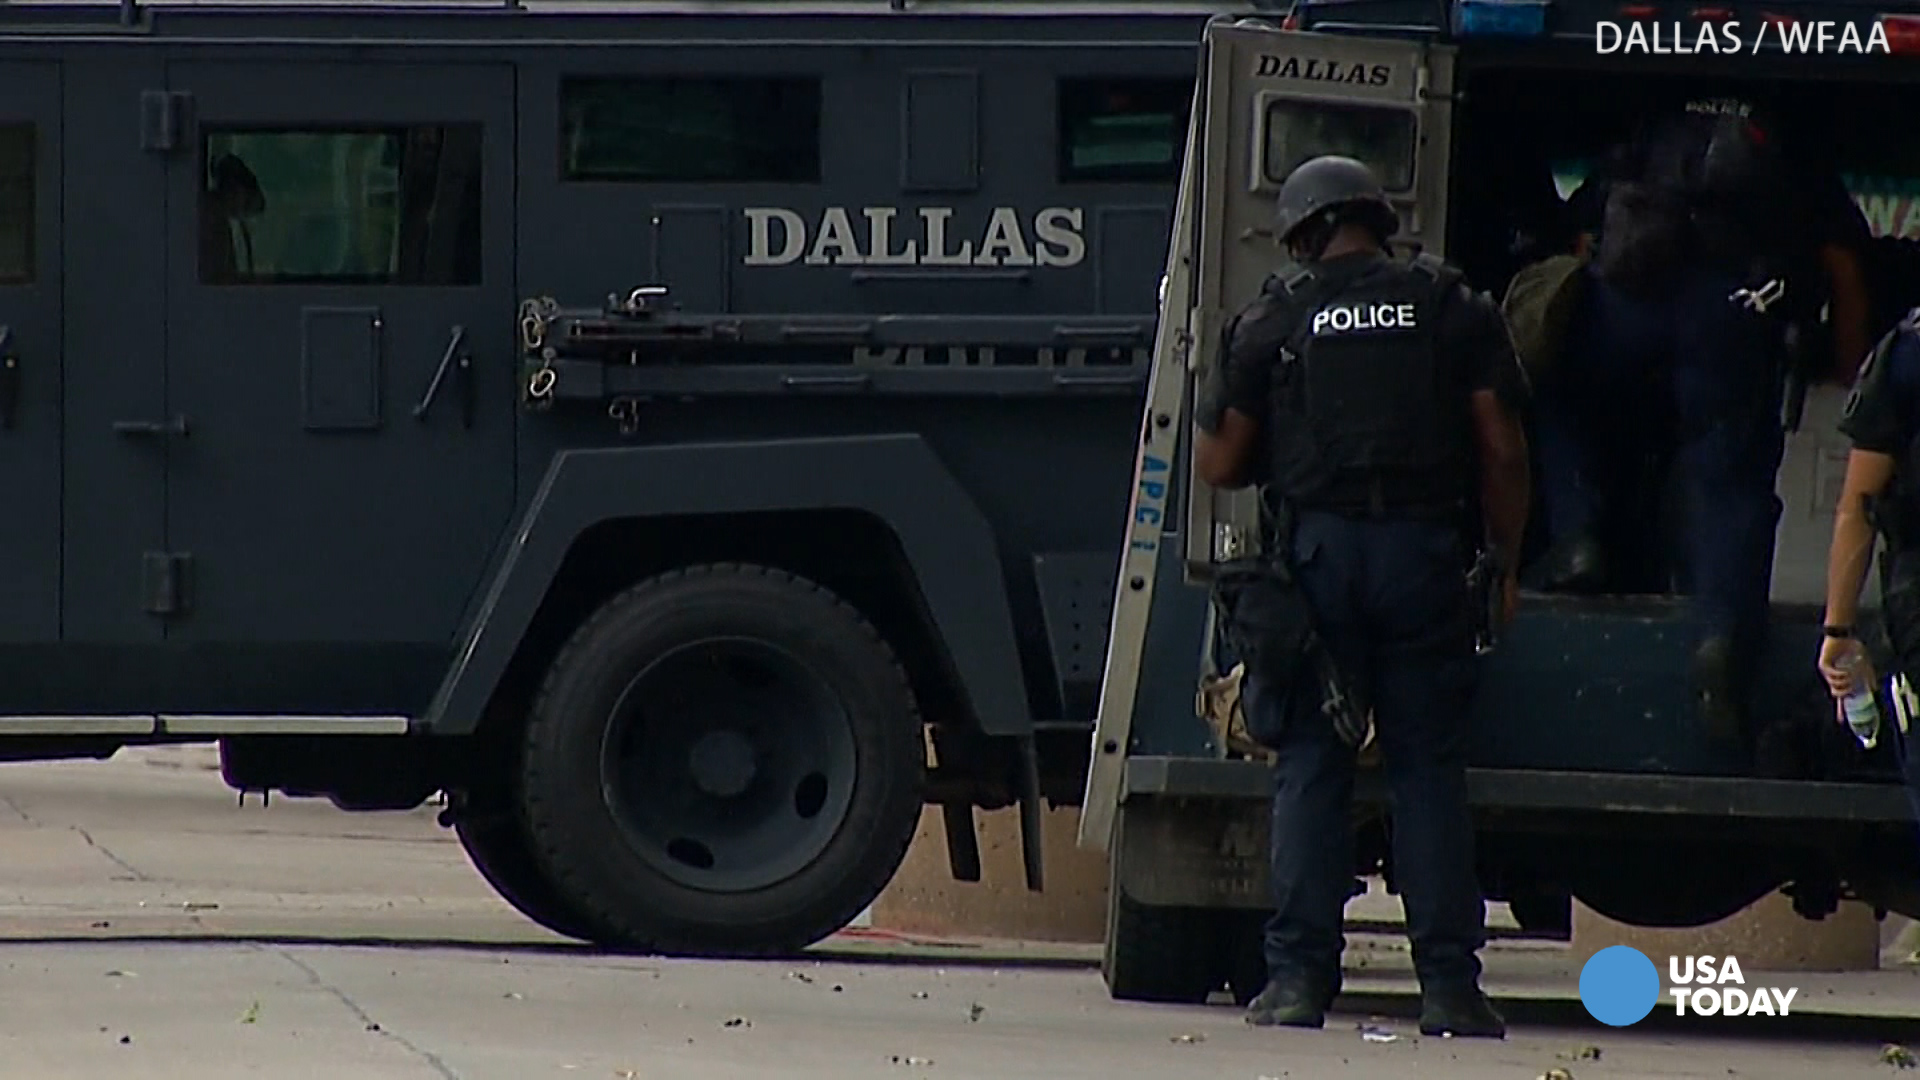 Dallas SWAT team deployed after threat to police